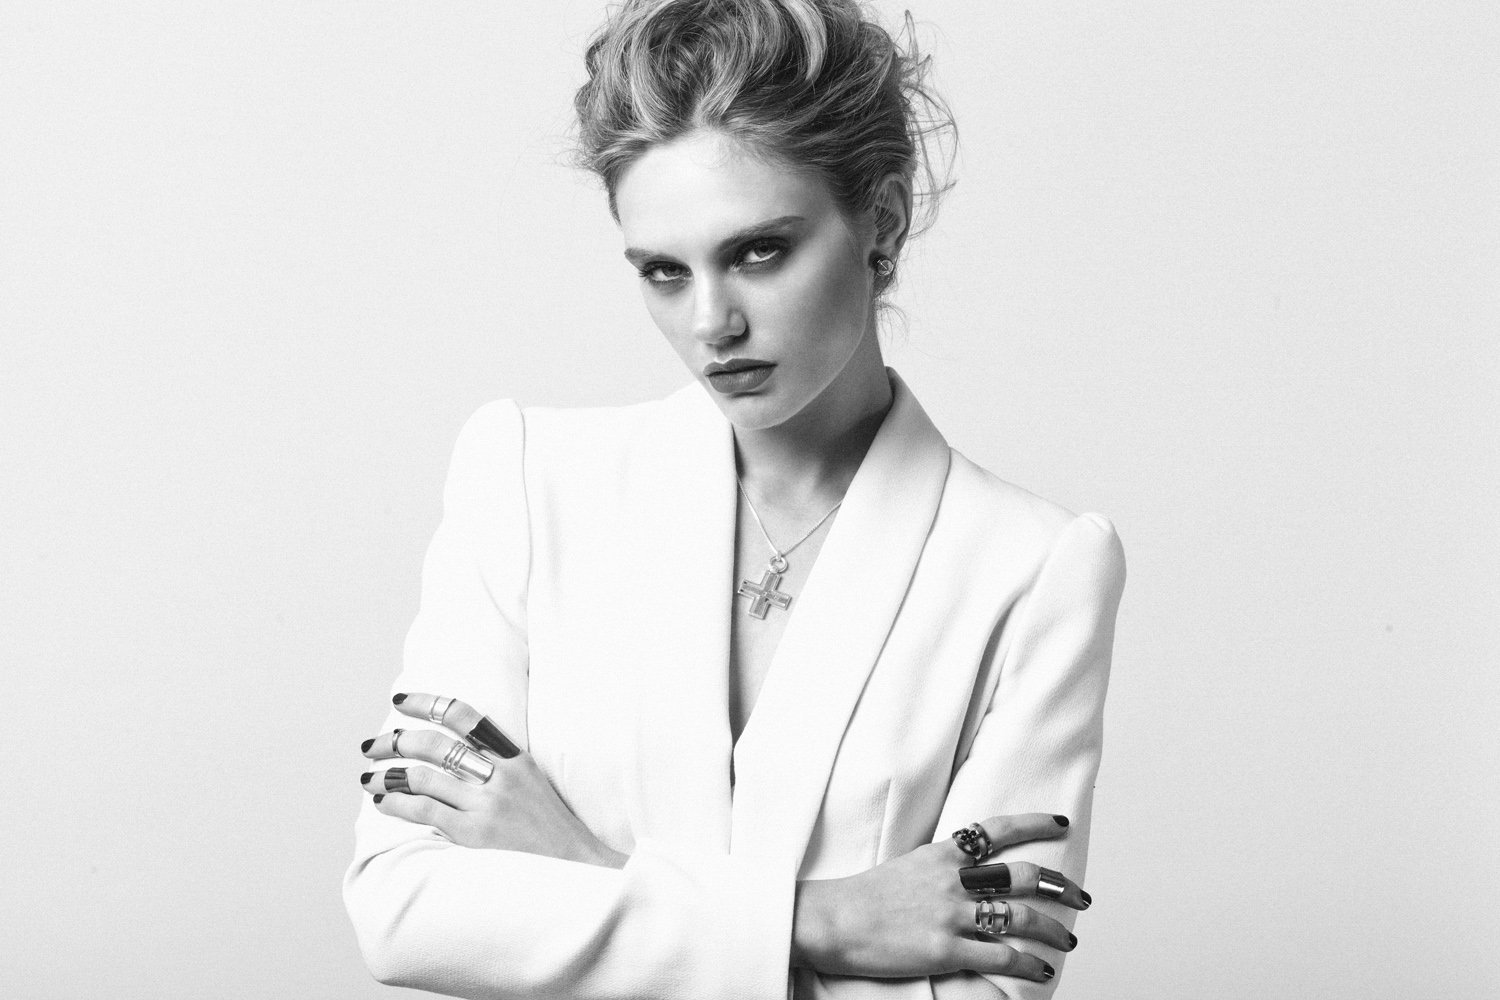 F+H Jewellery Campaign - AW14 'Subculture'